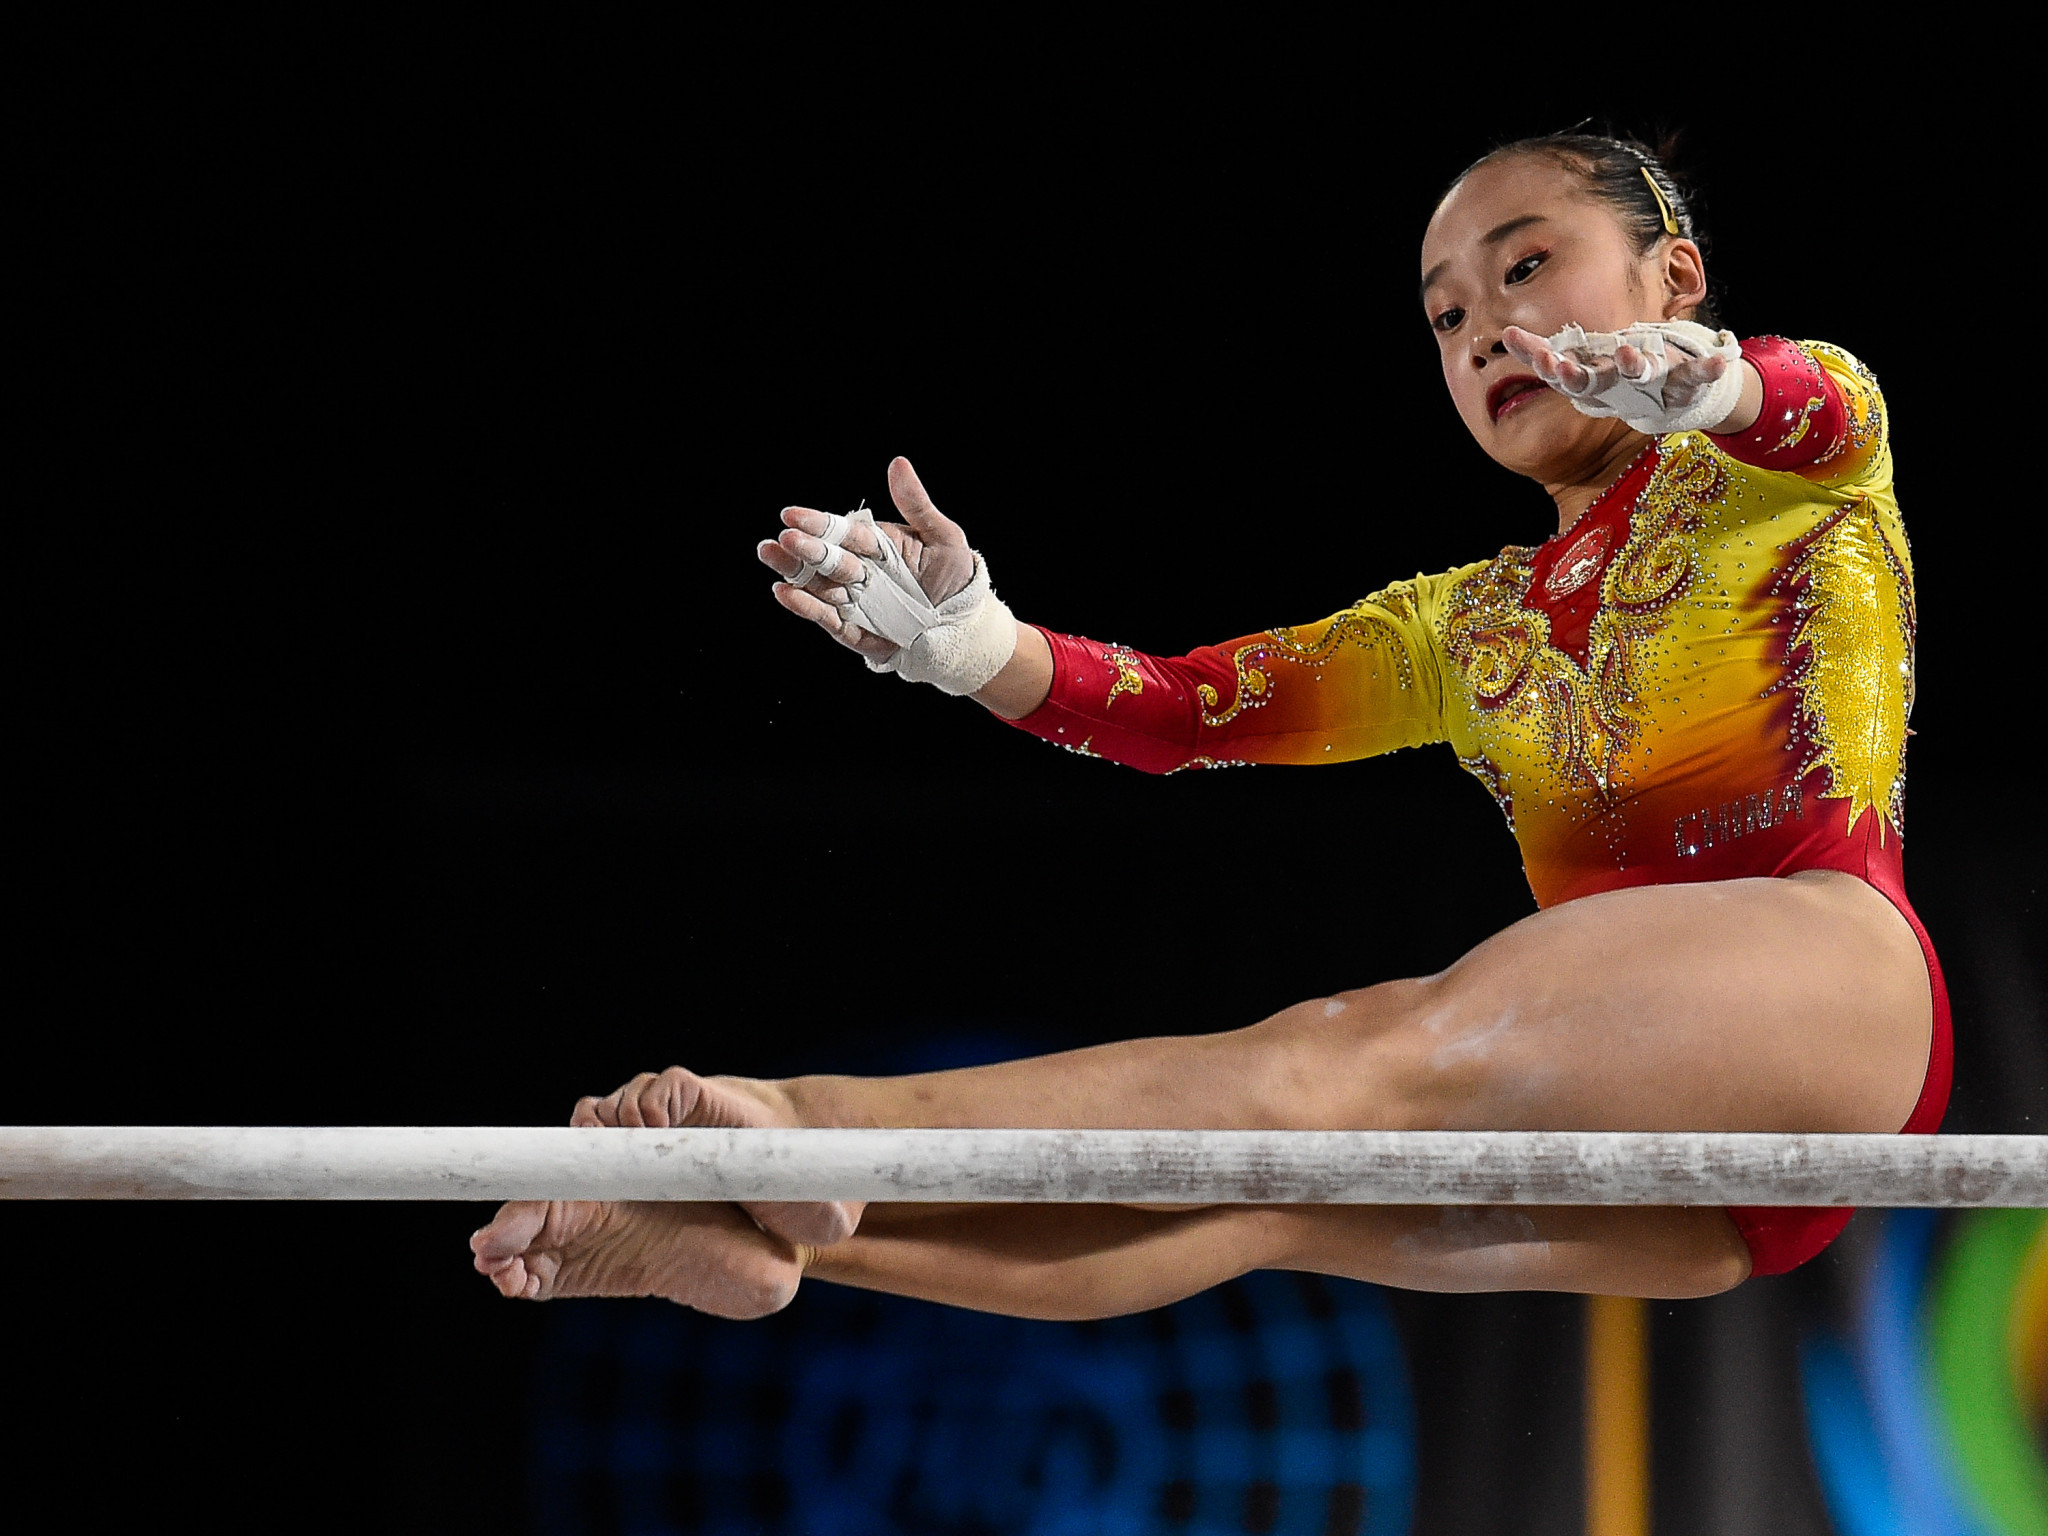 Double world champion Fan Yilin of China added to her growing list of international medals as she took gold in Melbourne ©Getty Images